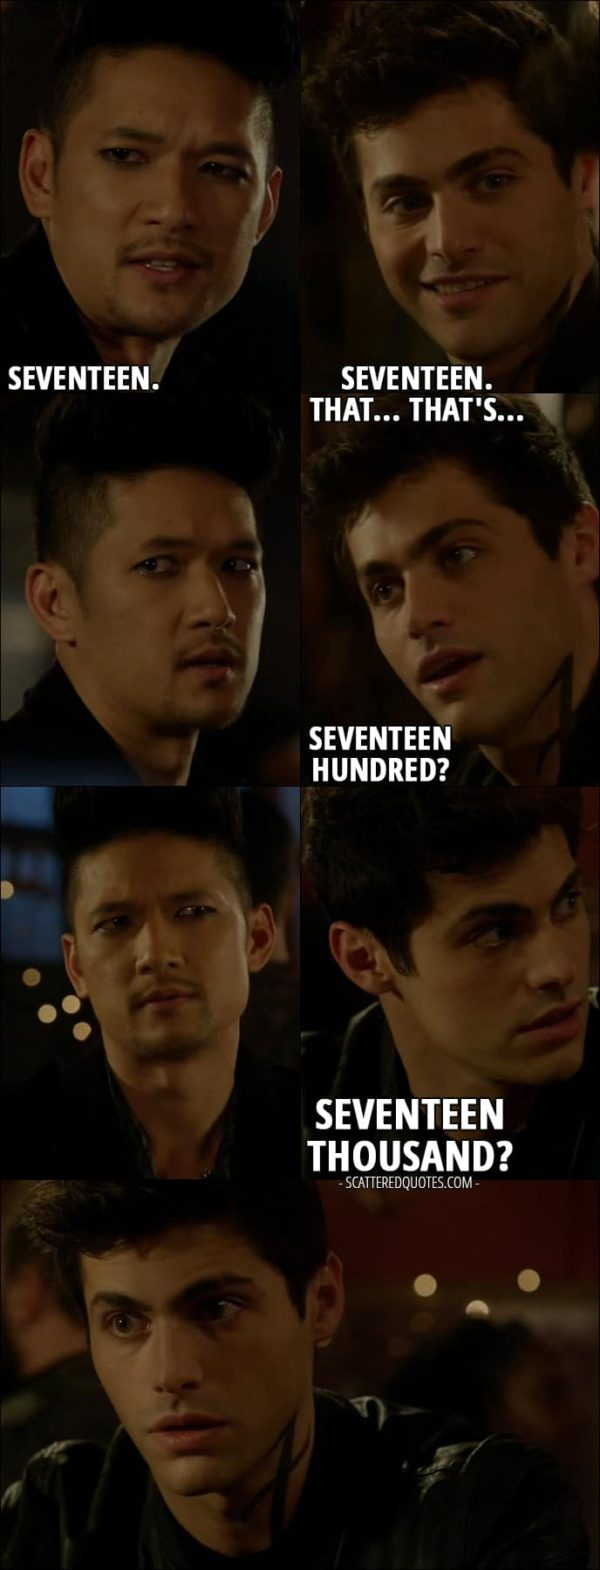 14 Best Shadowhunters Quotes from 'Iron Sisters' (2x06) - Alec Lightwood: How many? You can round down if you want. Magnus Bane: Okay. If you wanna know, I'll tell you. Seventeen. Alec Lightwood: Seventeen. That... that's... Seventeen... hundred? Seventeen thousand?